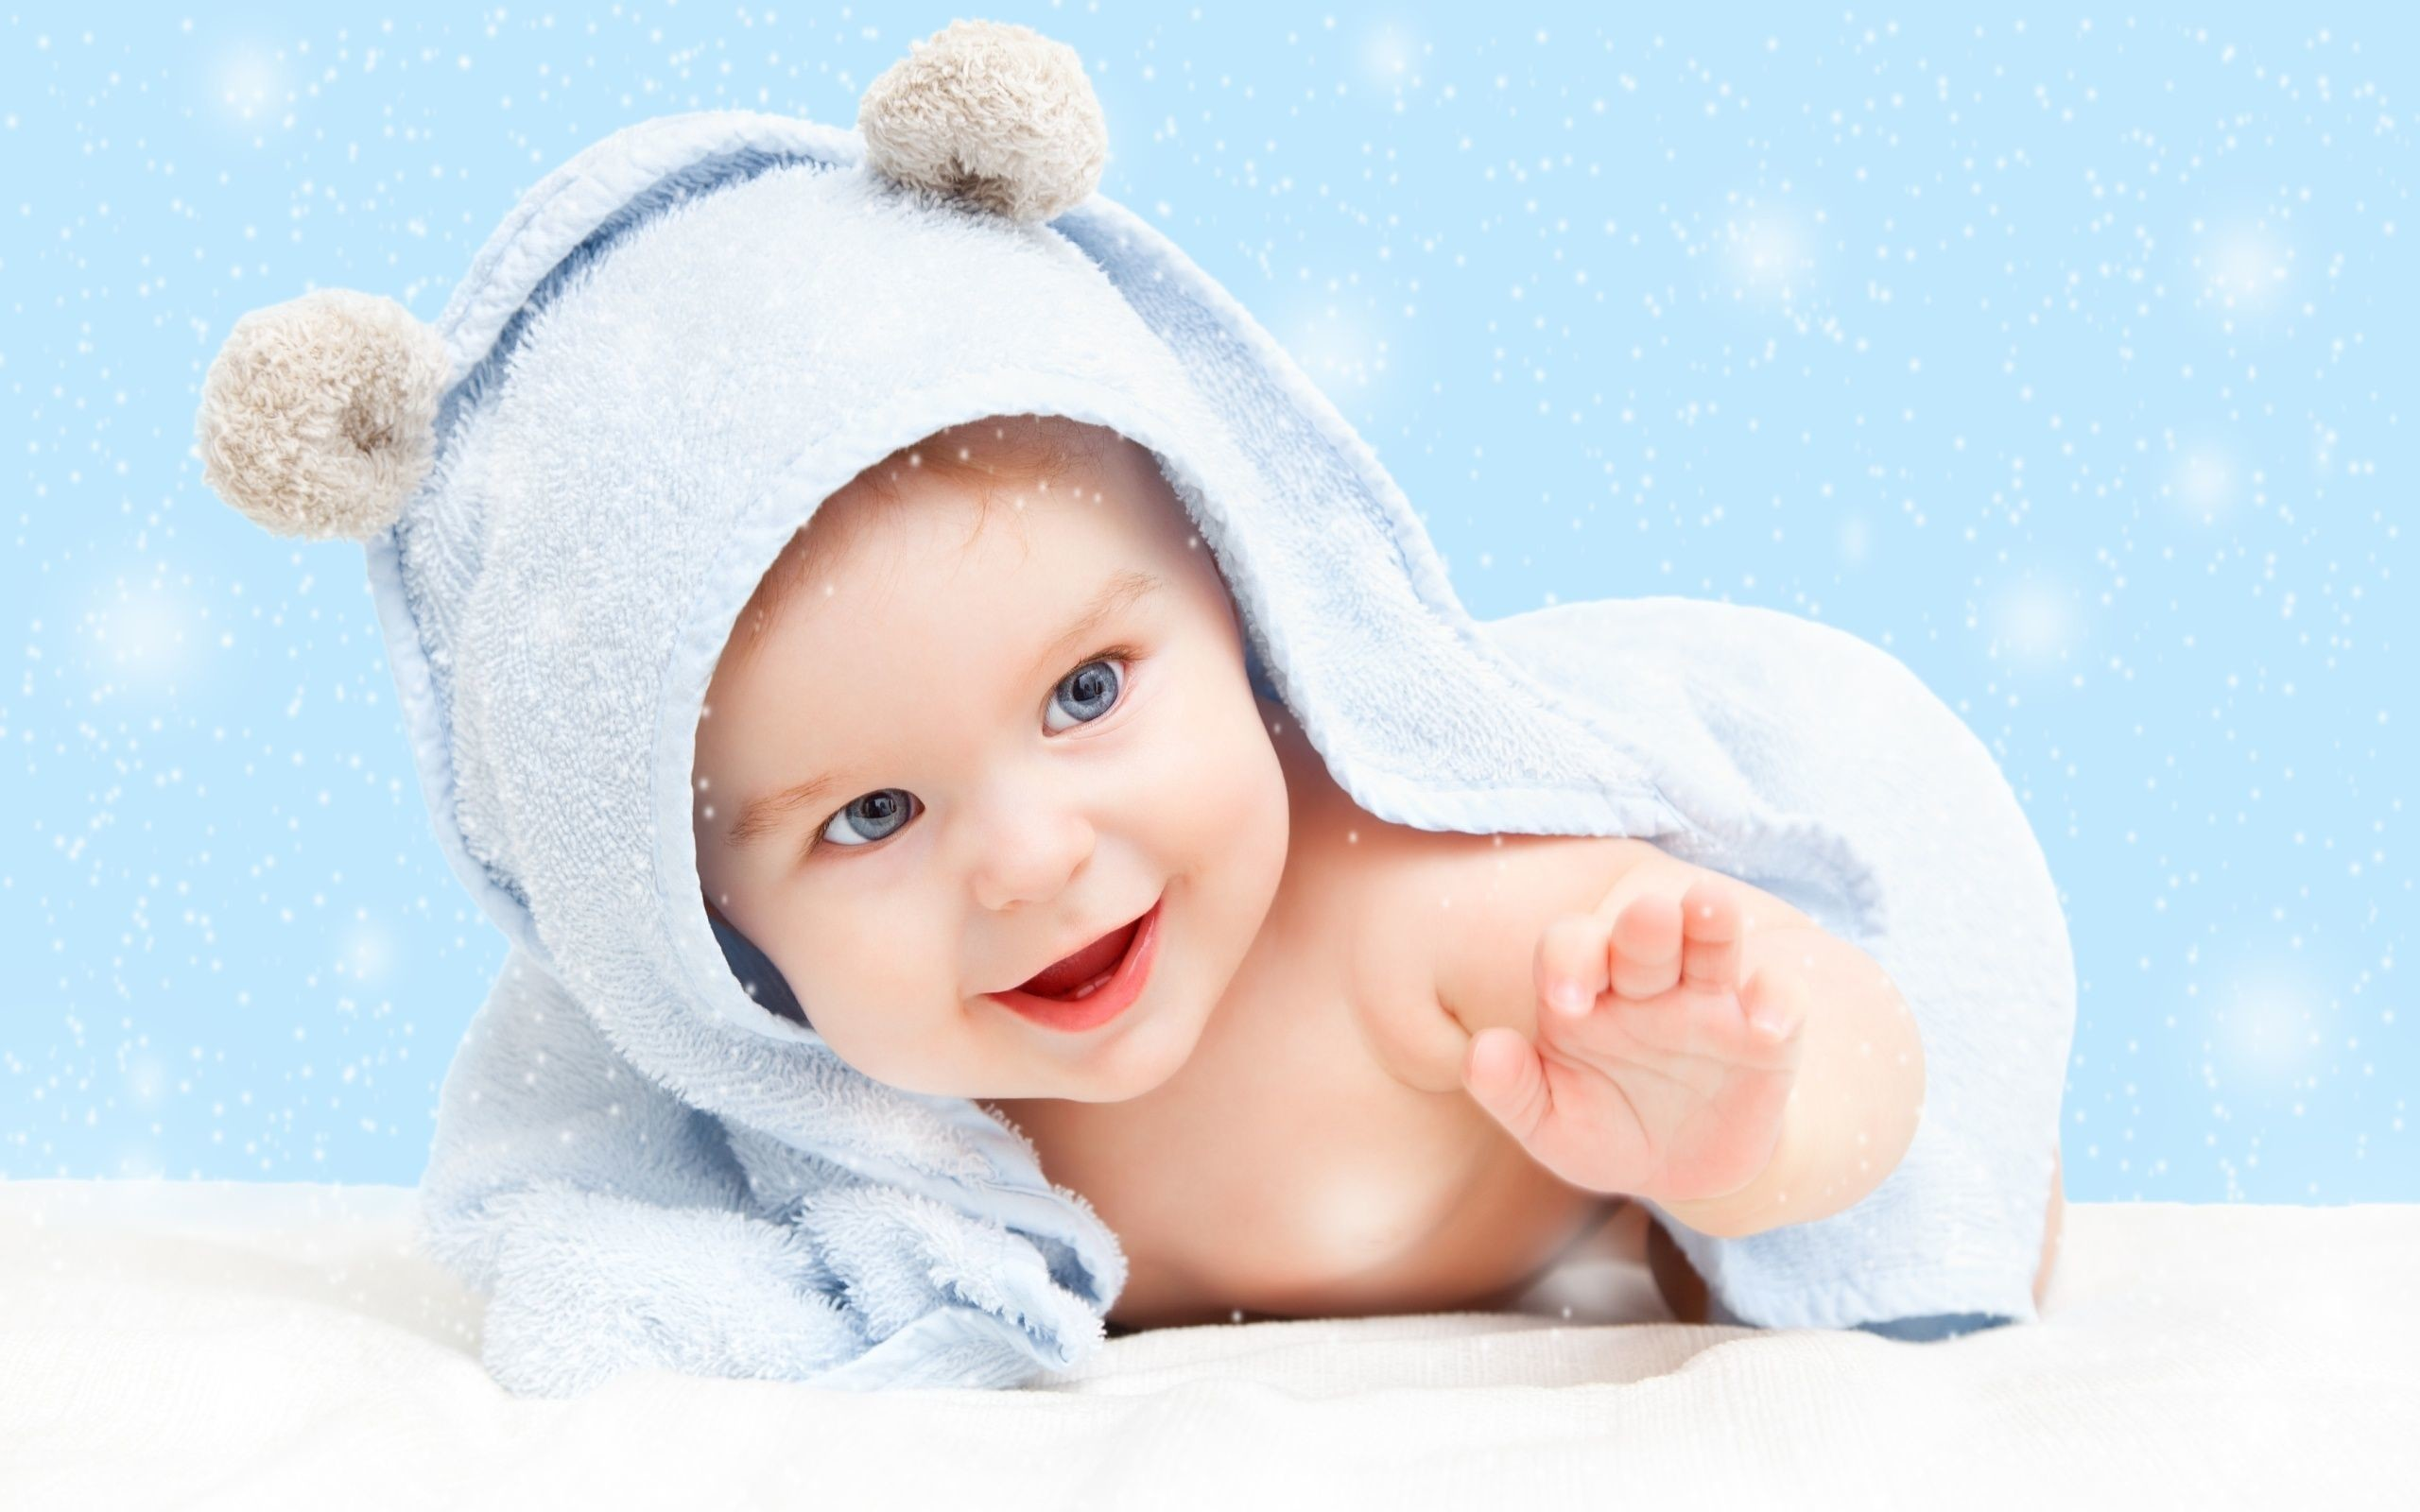 2560x1600  20 Cute Baby Wallpapers New :: Cute Baby Hd Wallpapers